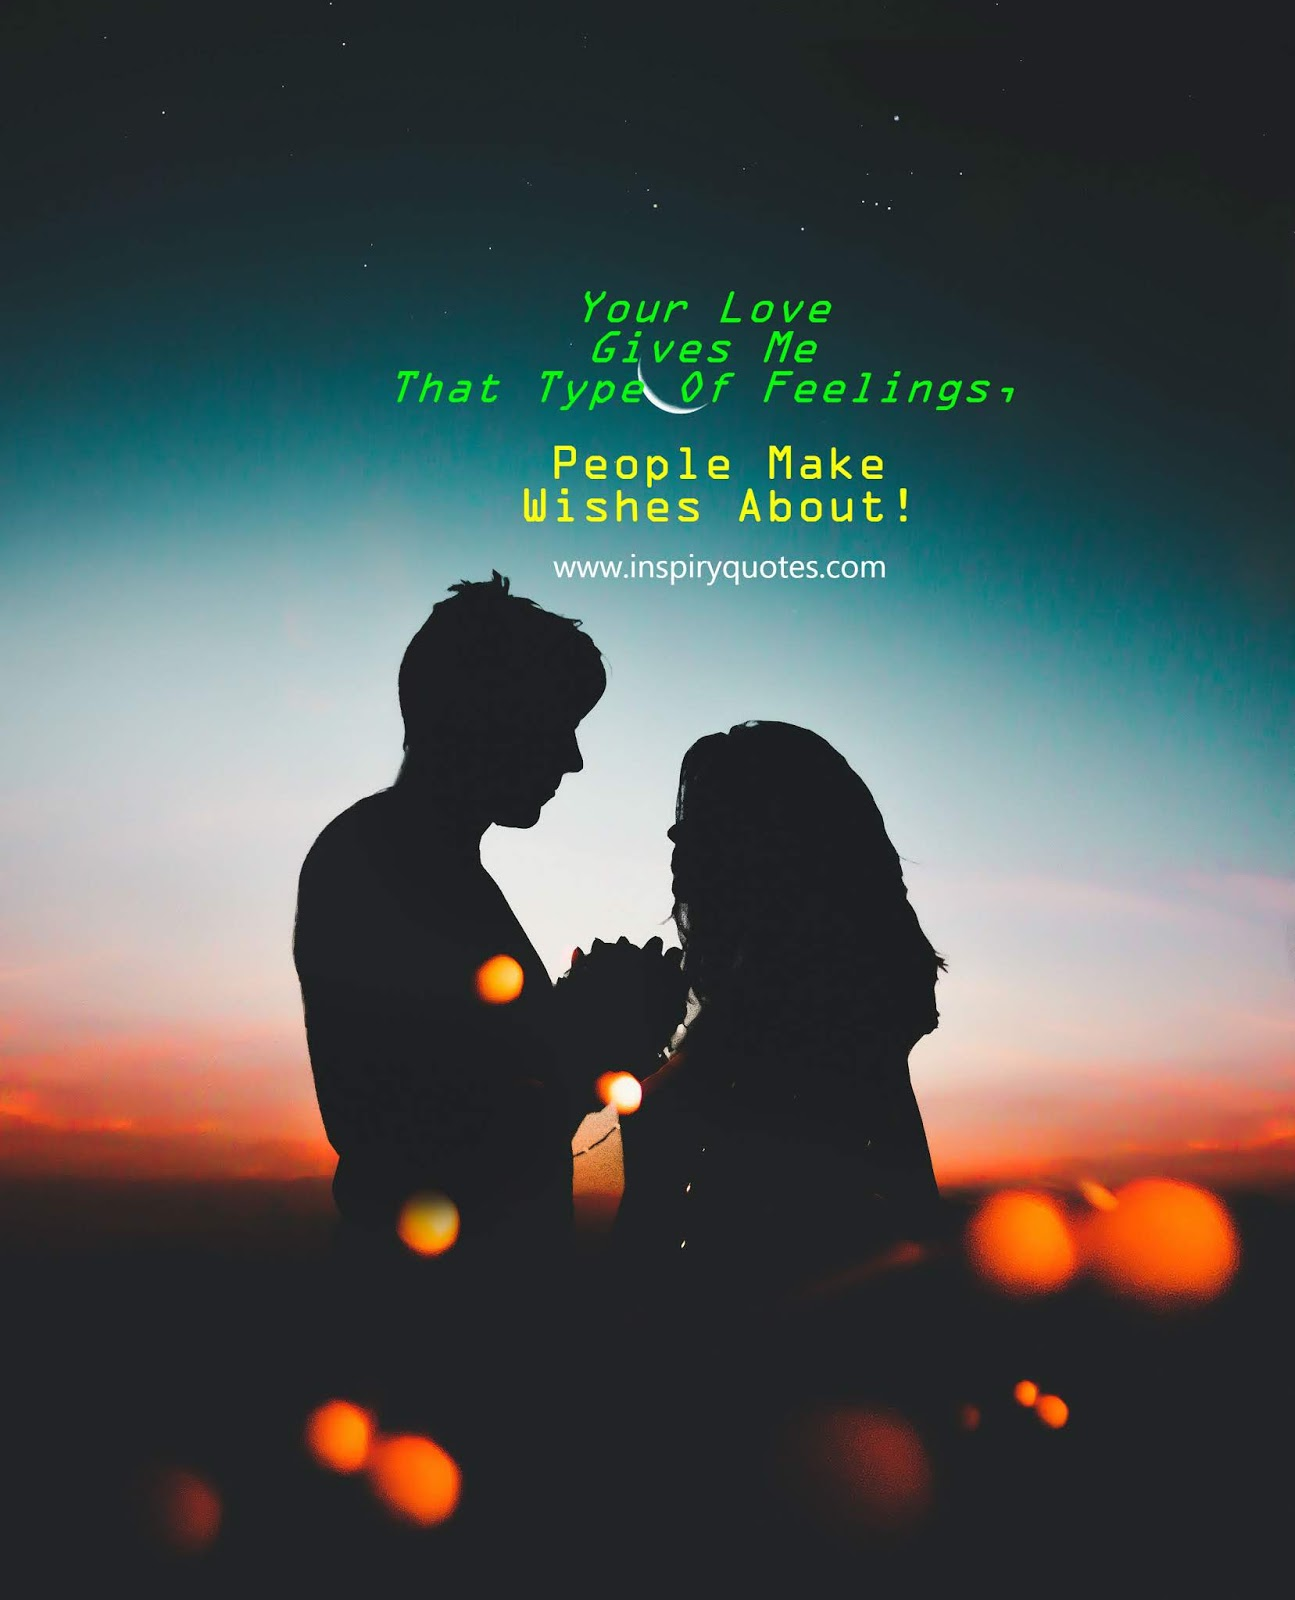 true love wishes quotes